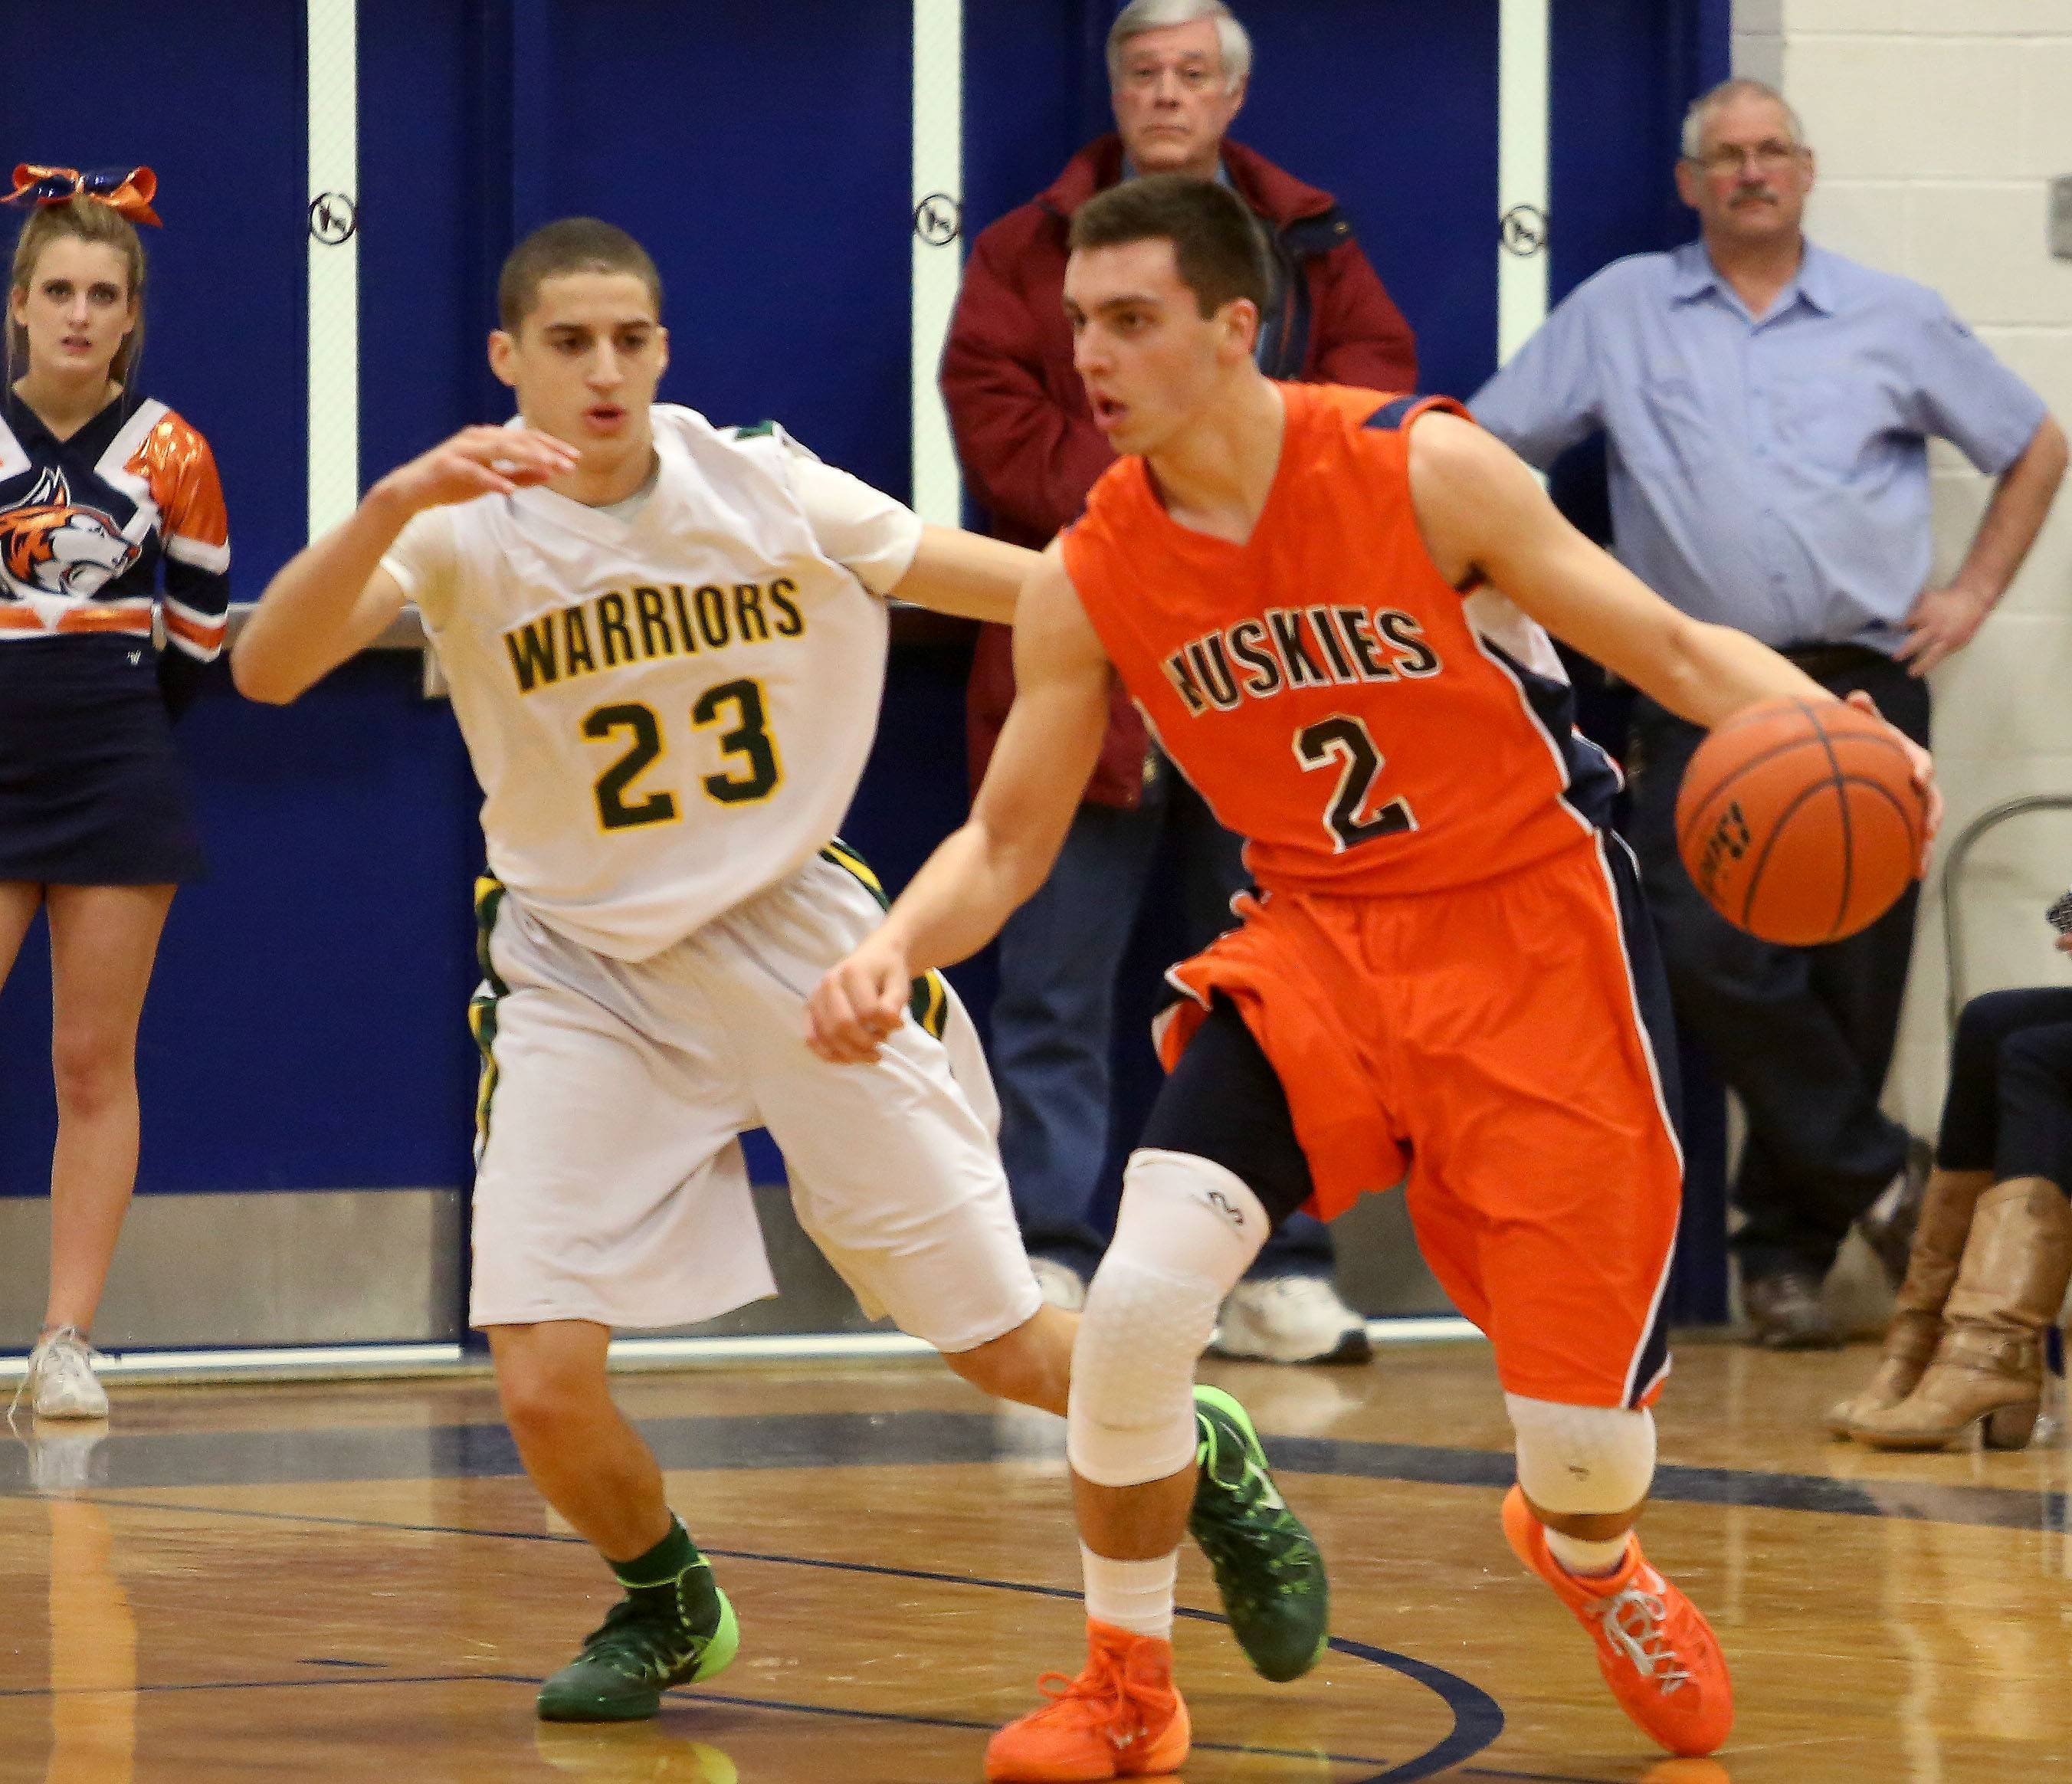 Naperville North's Anthony Rehayem, right, moves around Jay DeHaan, left, of Waubonsie Valley.